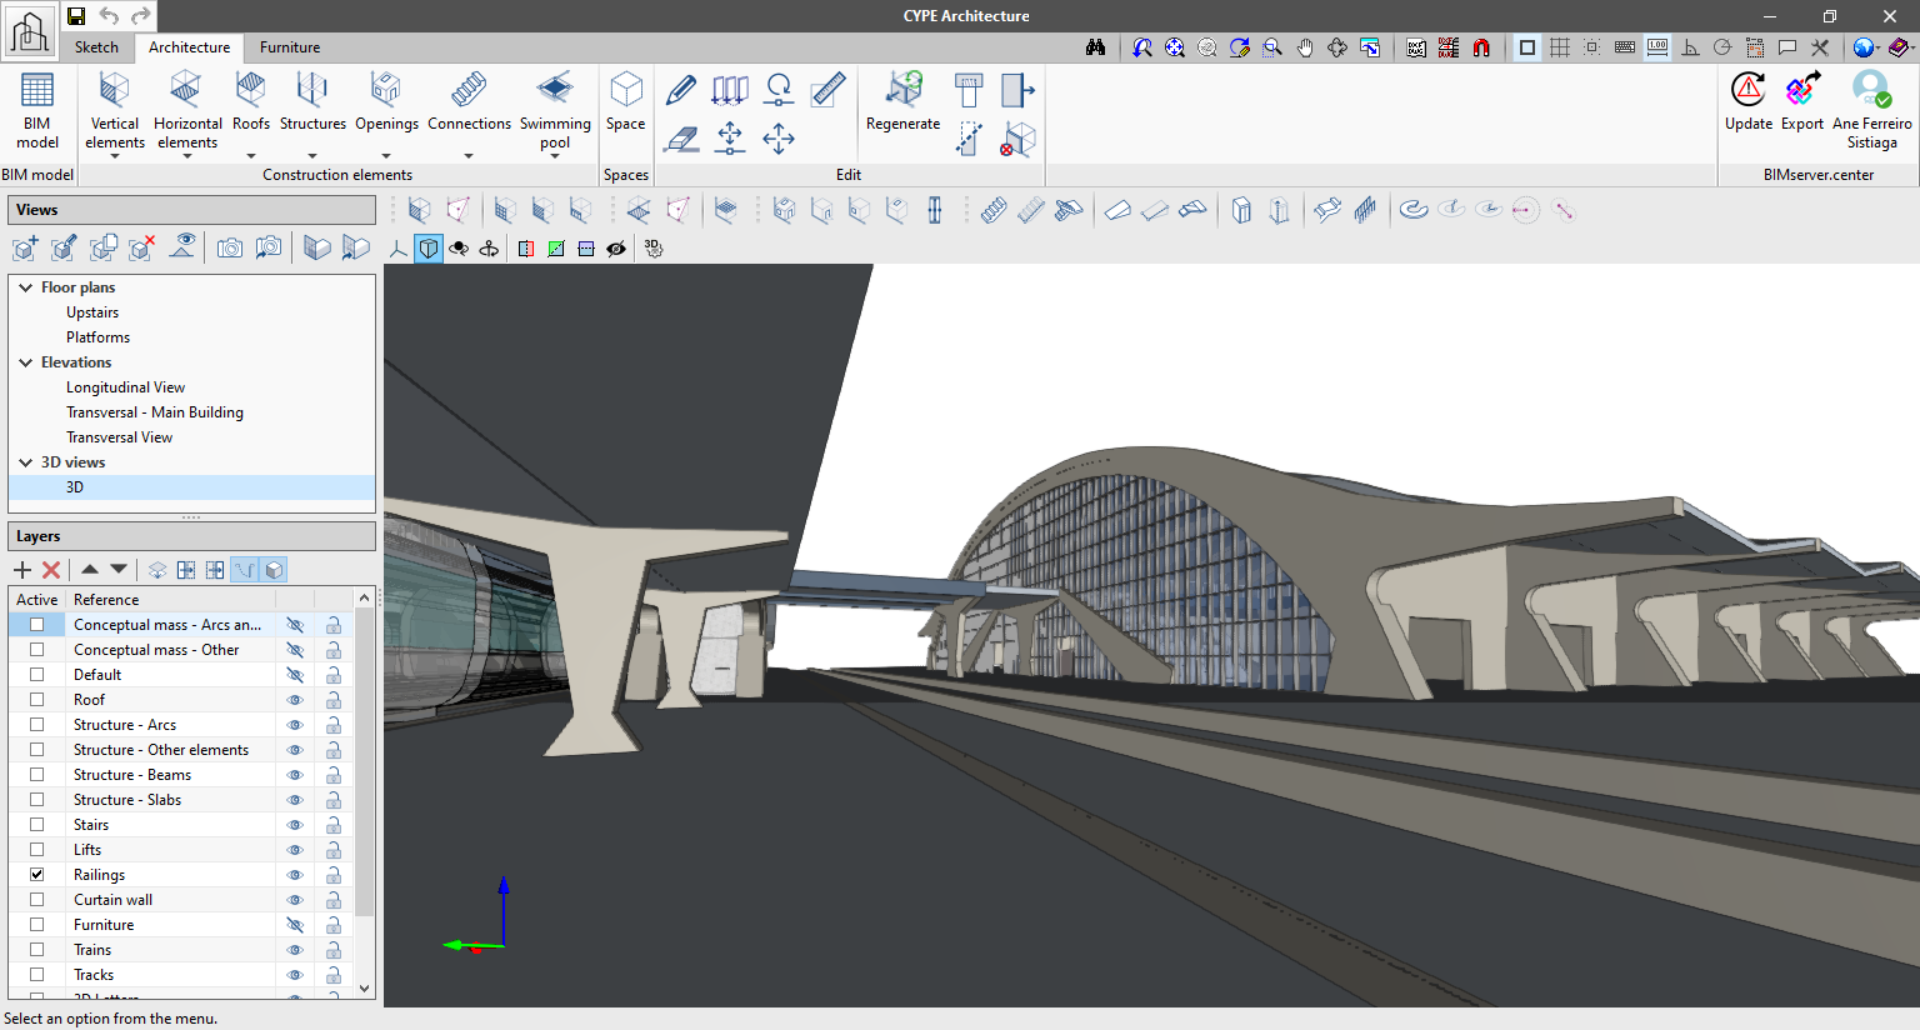 cype architecture 32